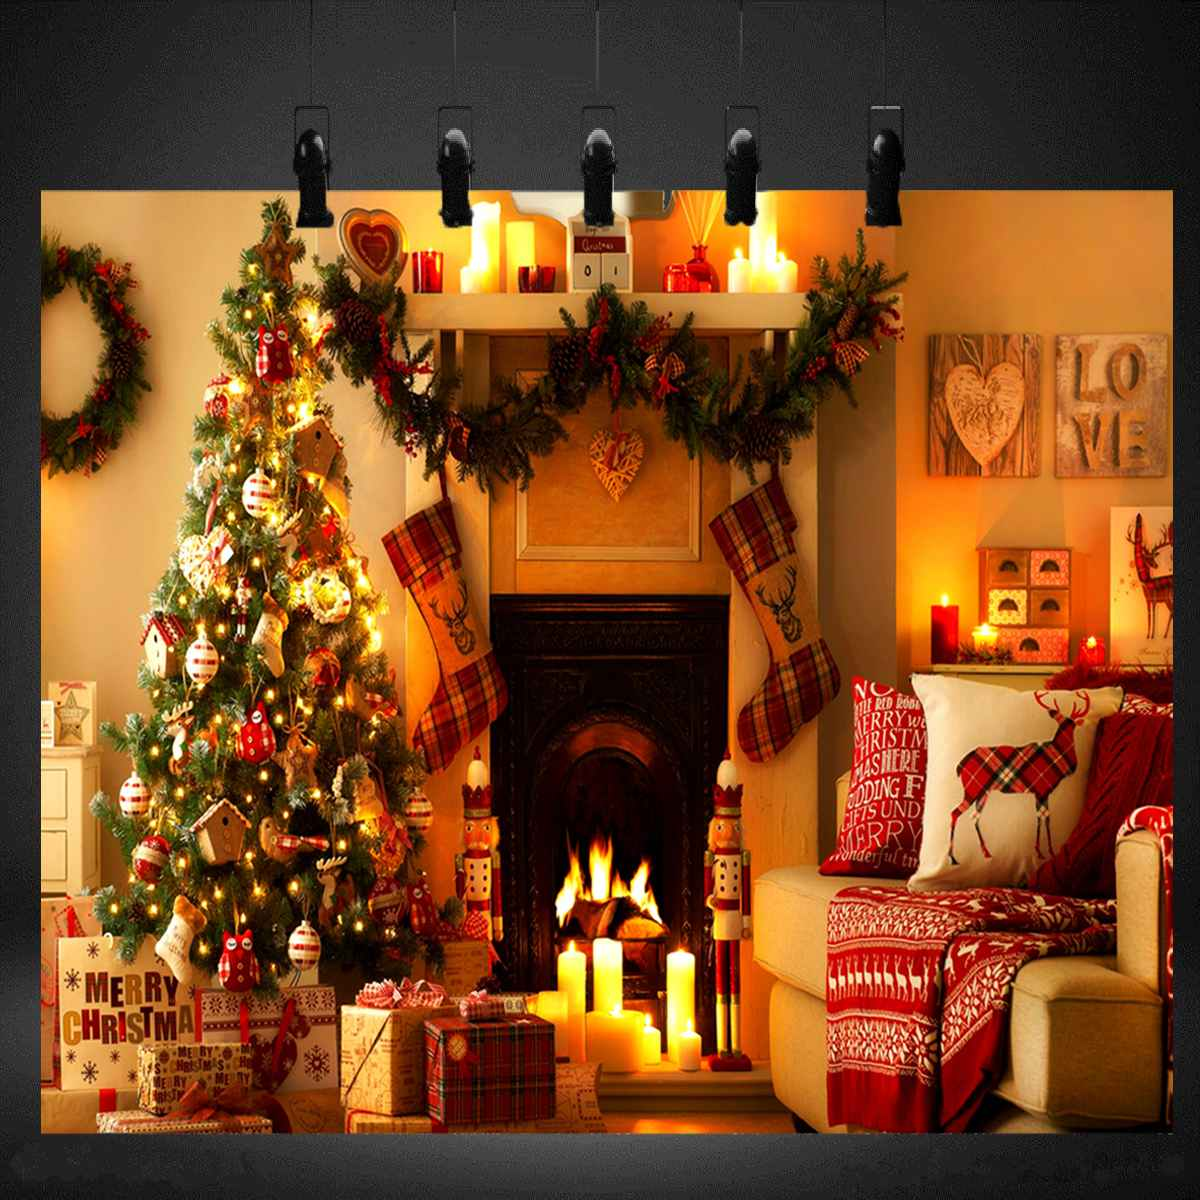 Freya 8x8FT Photo Backdrops Christmas Tree Fireplace Stocking Photography Background for Photo Studio 2018 New Arrival(China)